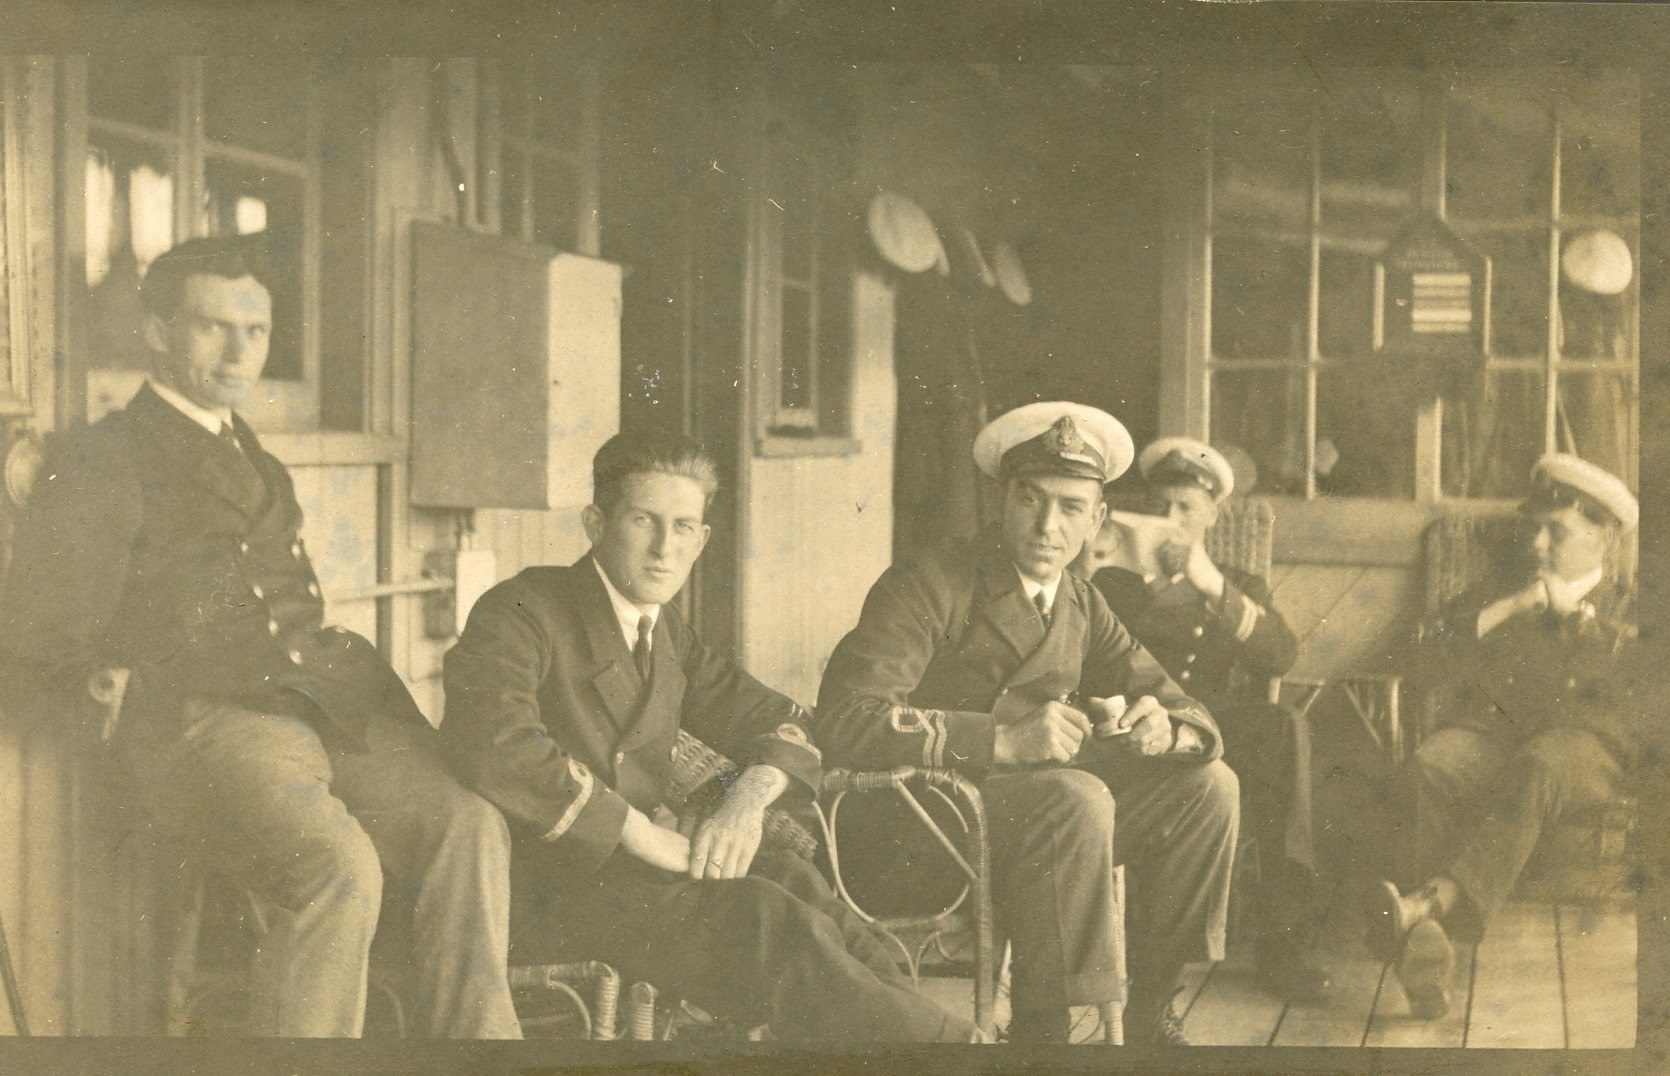 Flight Sub-Lieutenant Cecil John Clayton (left), who led one of the lighter-borne patrols, relaxing with fellow pilots at Felixstowe, 1917. From 'Photograph album of RNAS service at Felixstowe, 1917-1918' compiled by Flight Sub-Lieutenant Edward W Keesey (RAFM reference: B295)